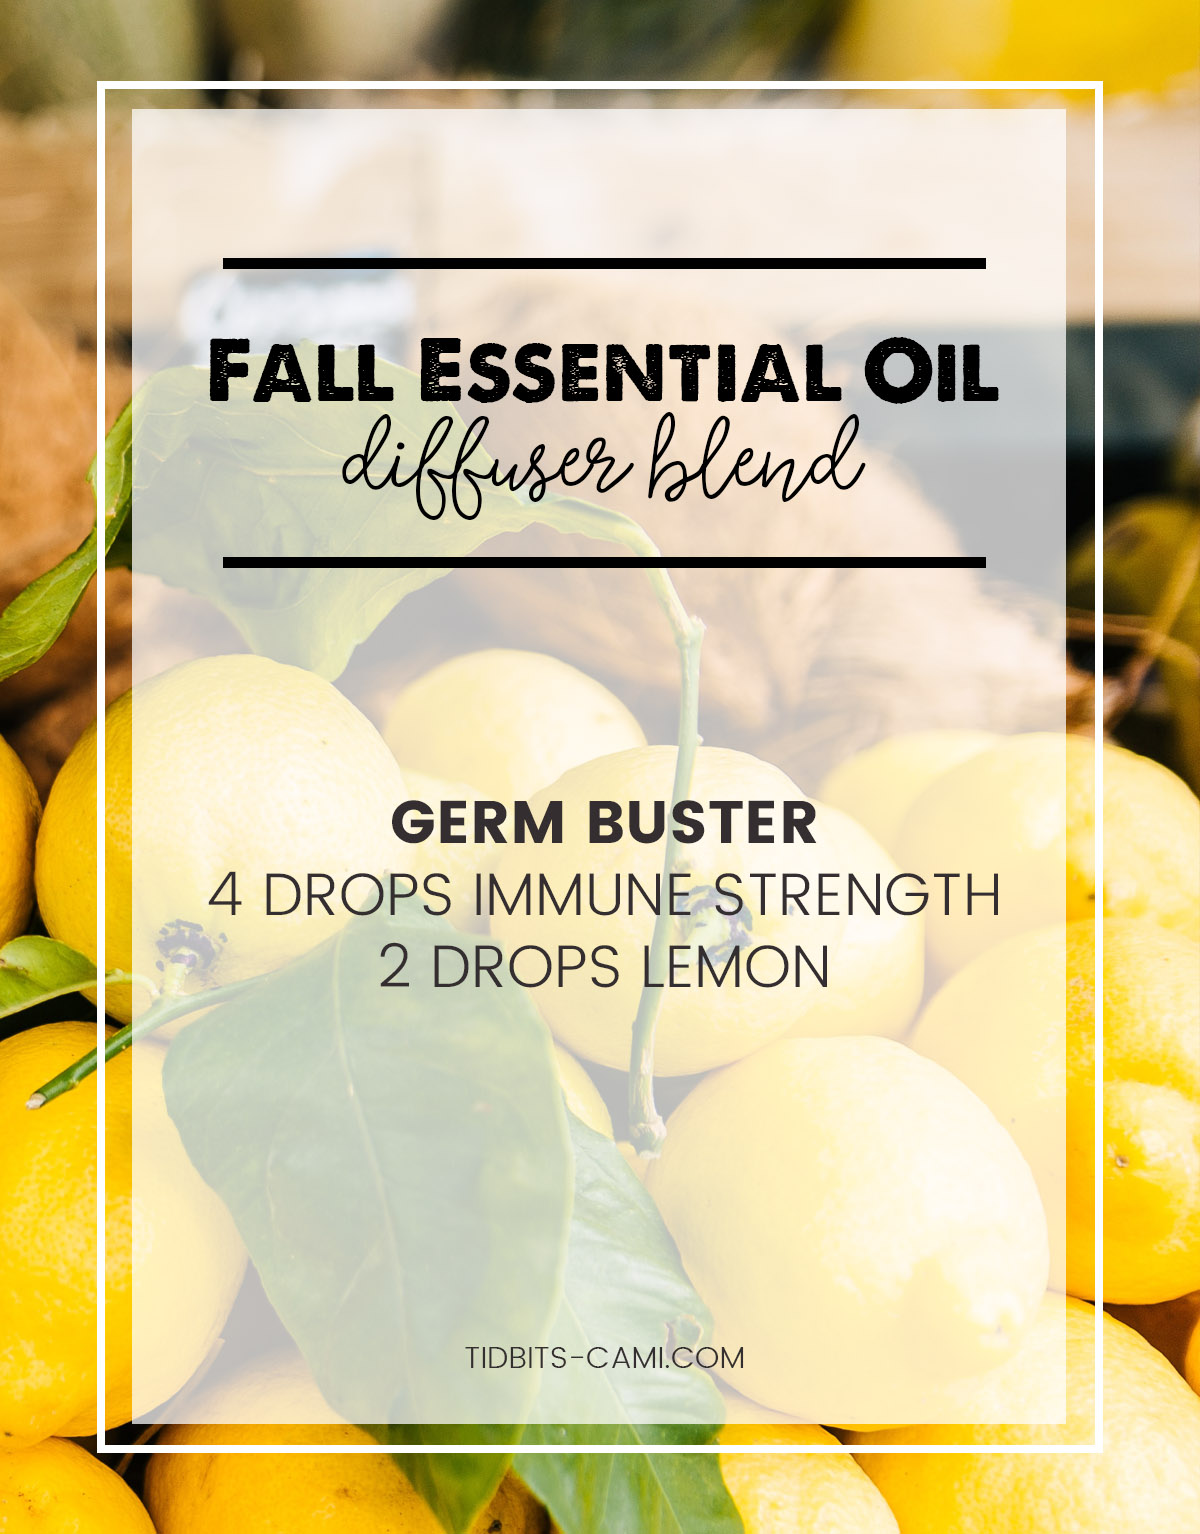 germ buster essential oil diffuser blend